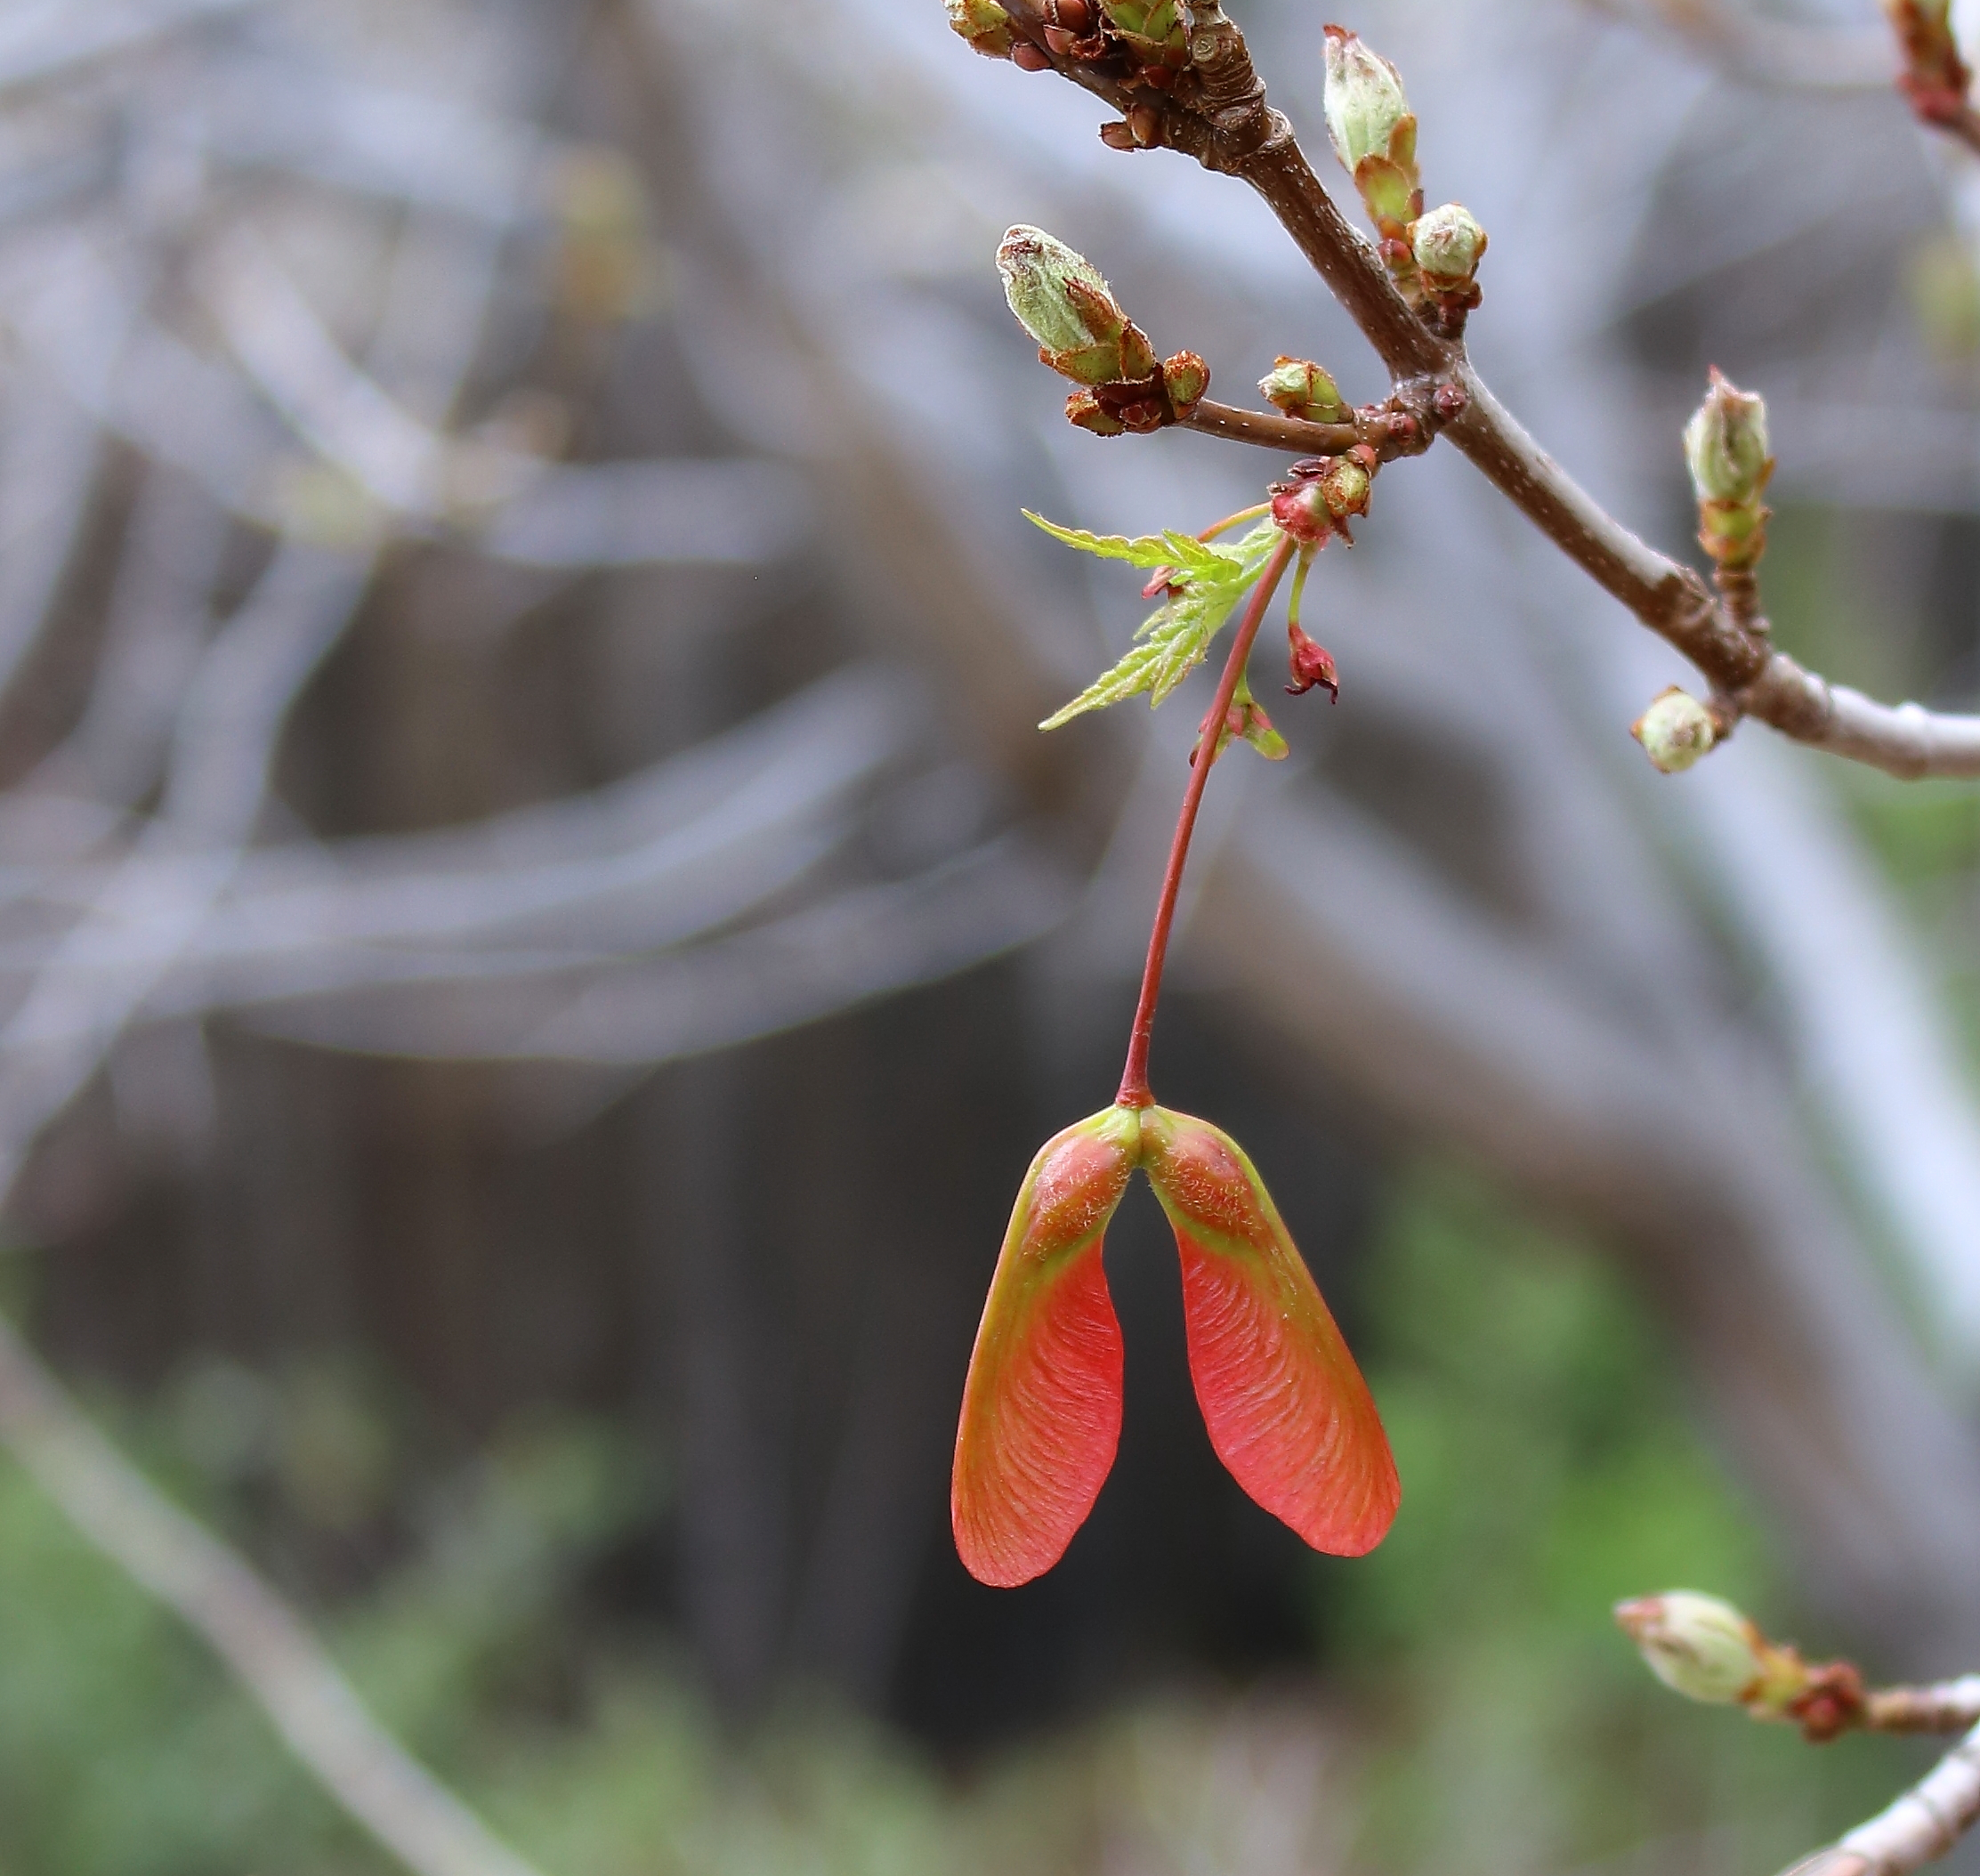 Maple seed pods: Propagators or Helicopters? | Tracy Abell